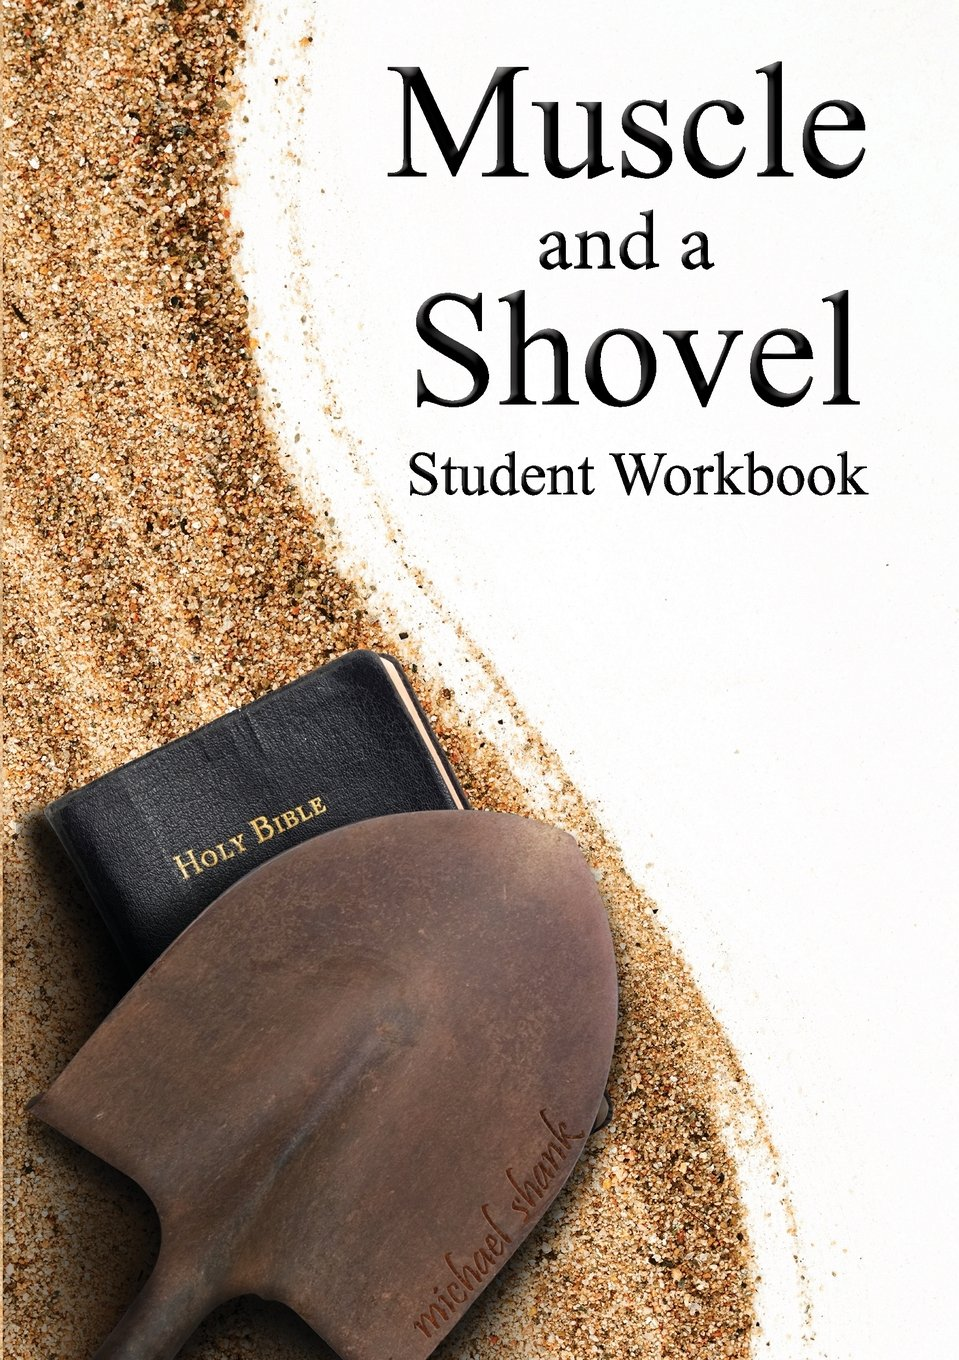 Workbooks god and family student workbook pdf : Muscle and a Shovel Bible Class Student Workbook: Michael Shank ...